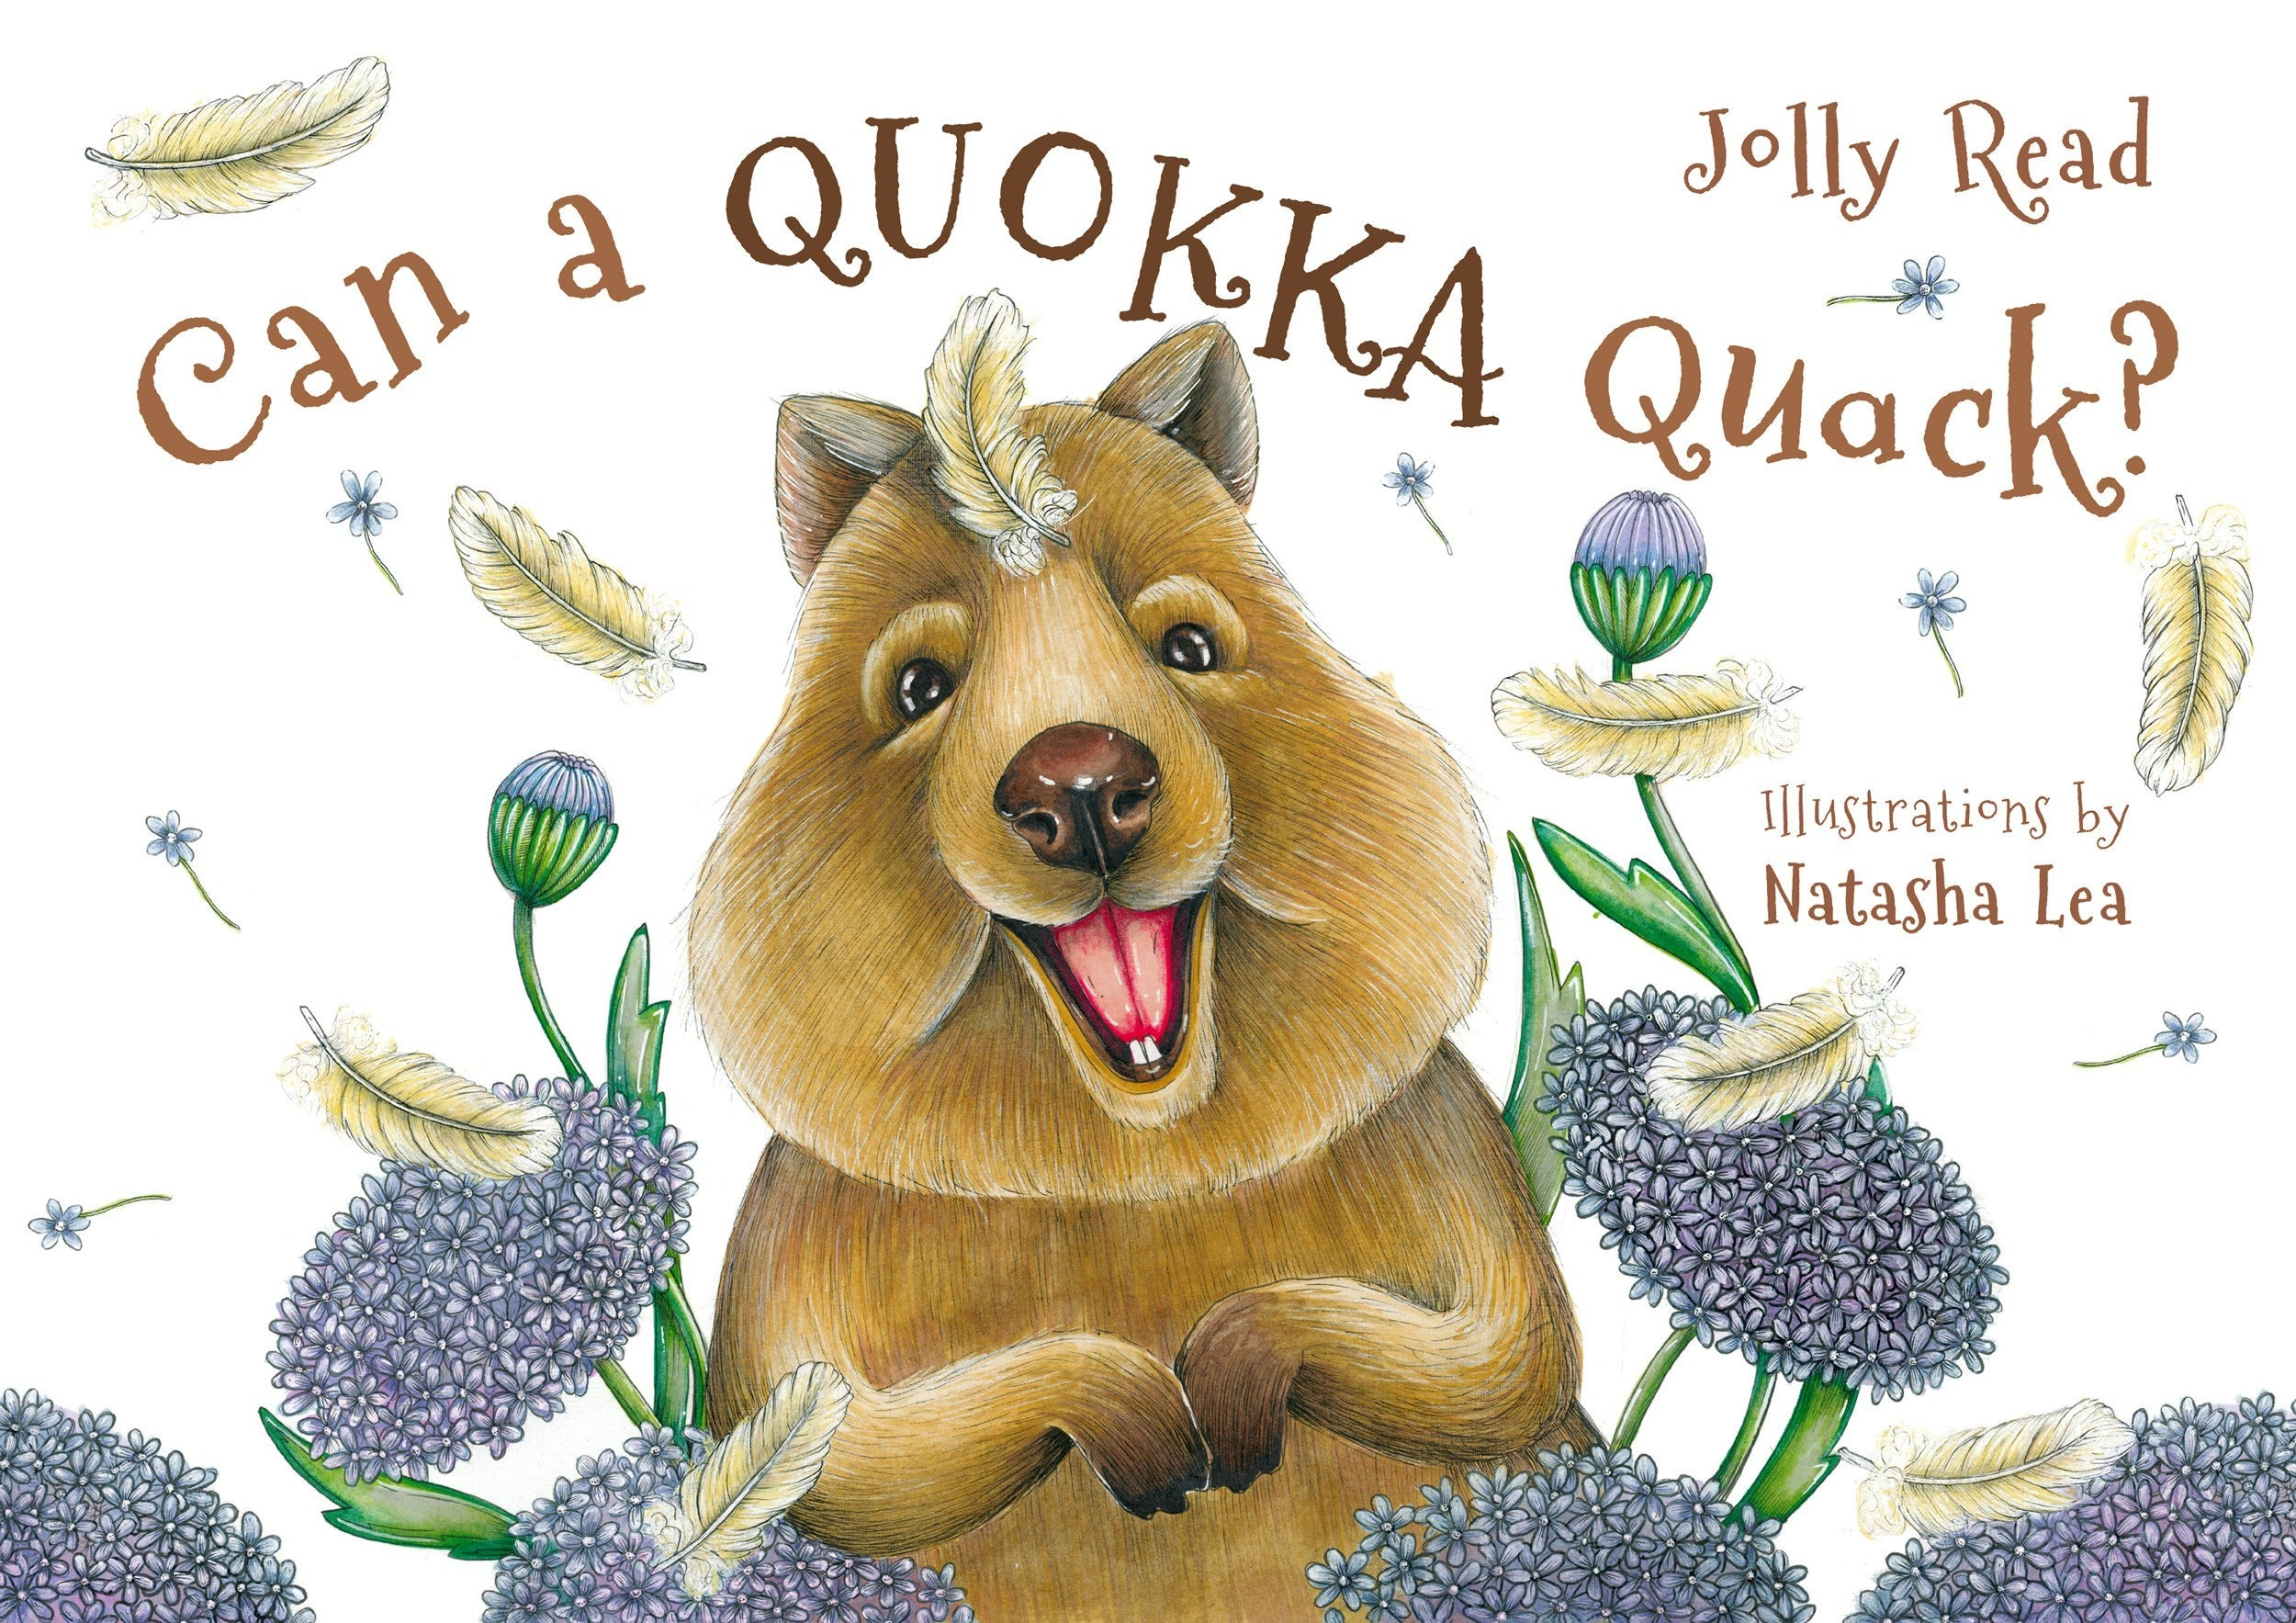 Can a Quokka Quack (Softcover) by Jolly Read